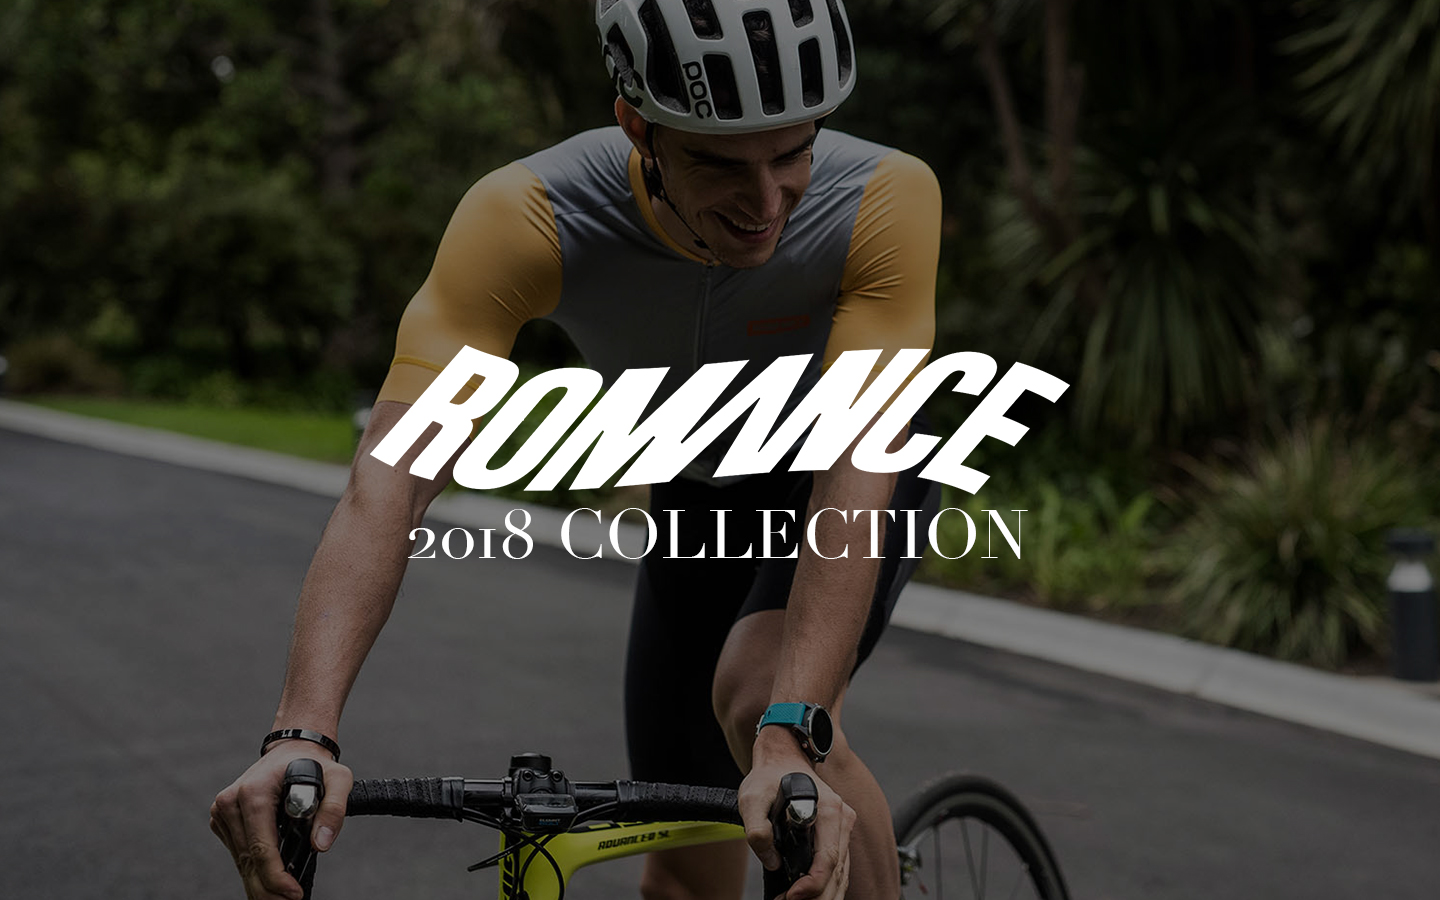 Romance: 2018 Collection photo